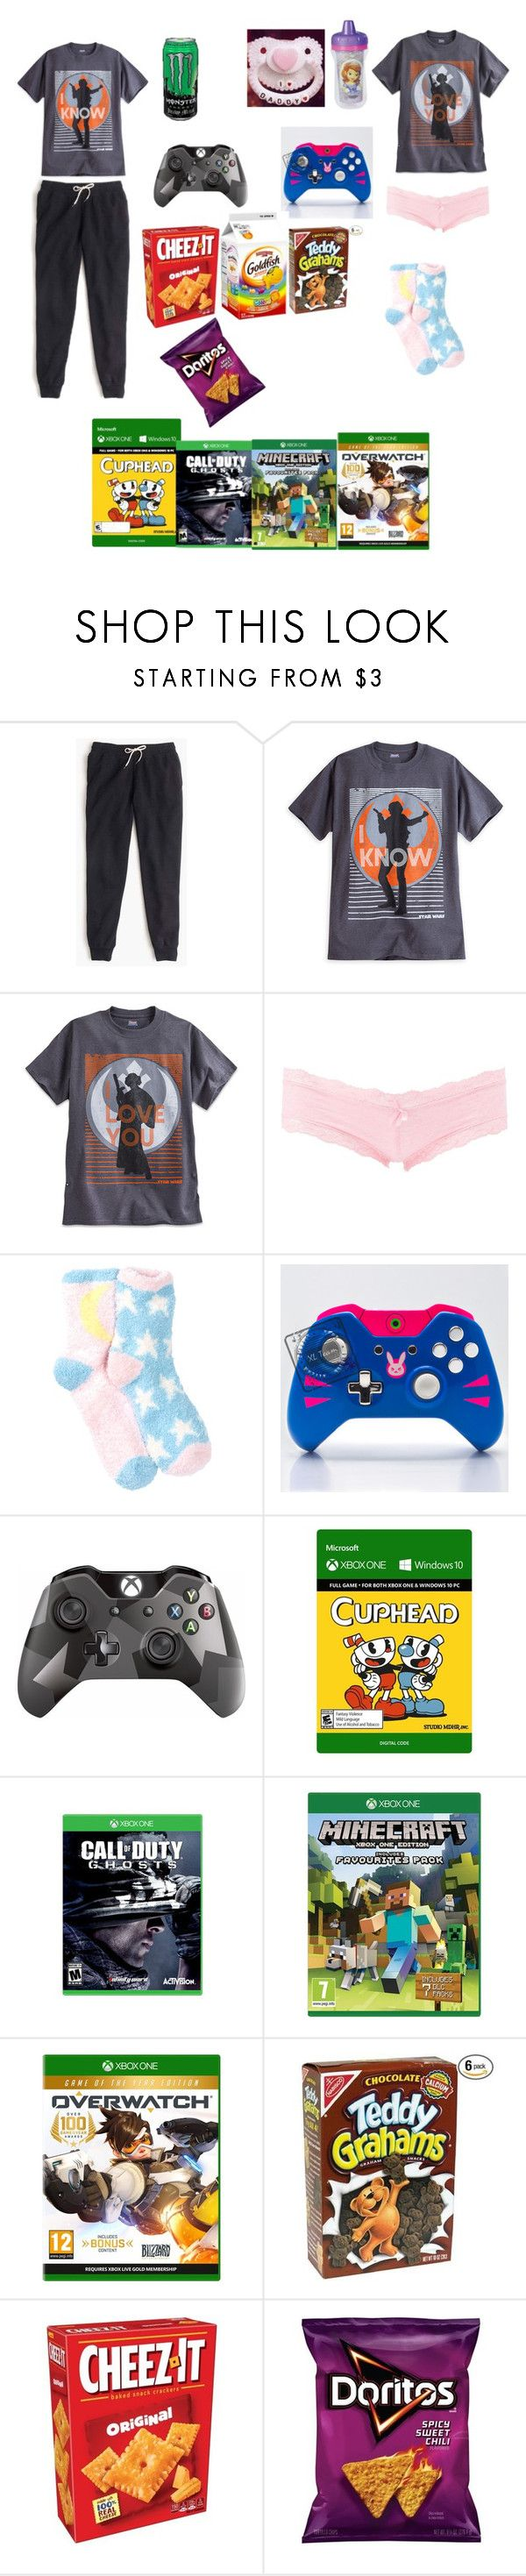 """Video games w/ daddy~"" by lil-panada-princess ❤ liked on Polyvore featuring J.Crew, Charlotte Russe, Free Press, Disney and Microsoft"